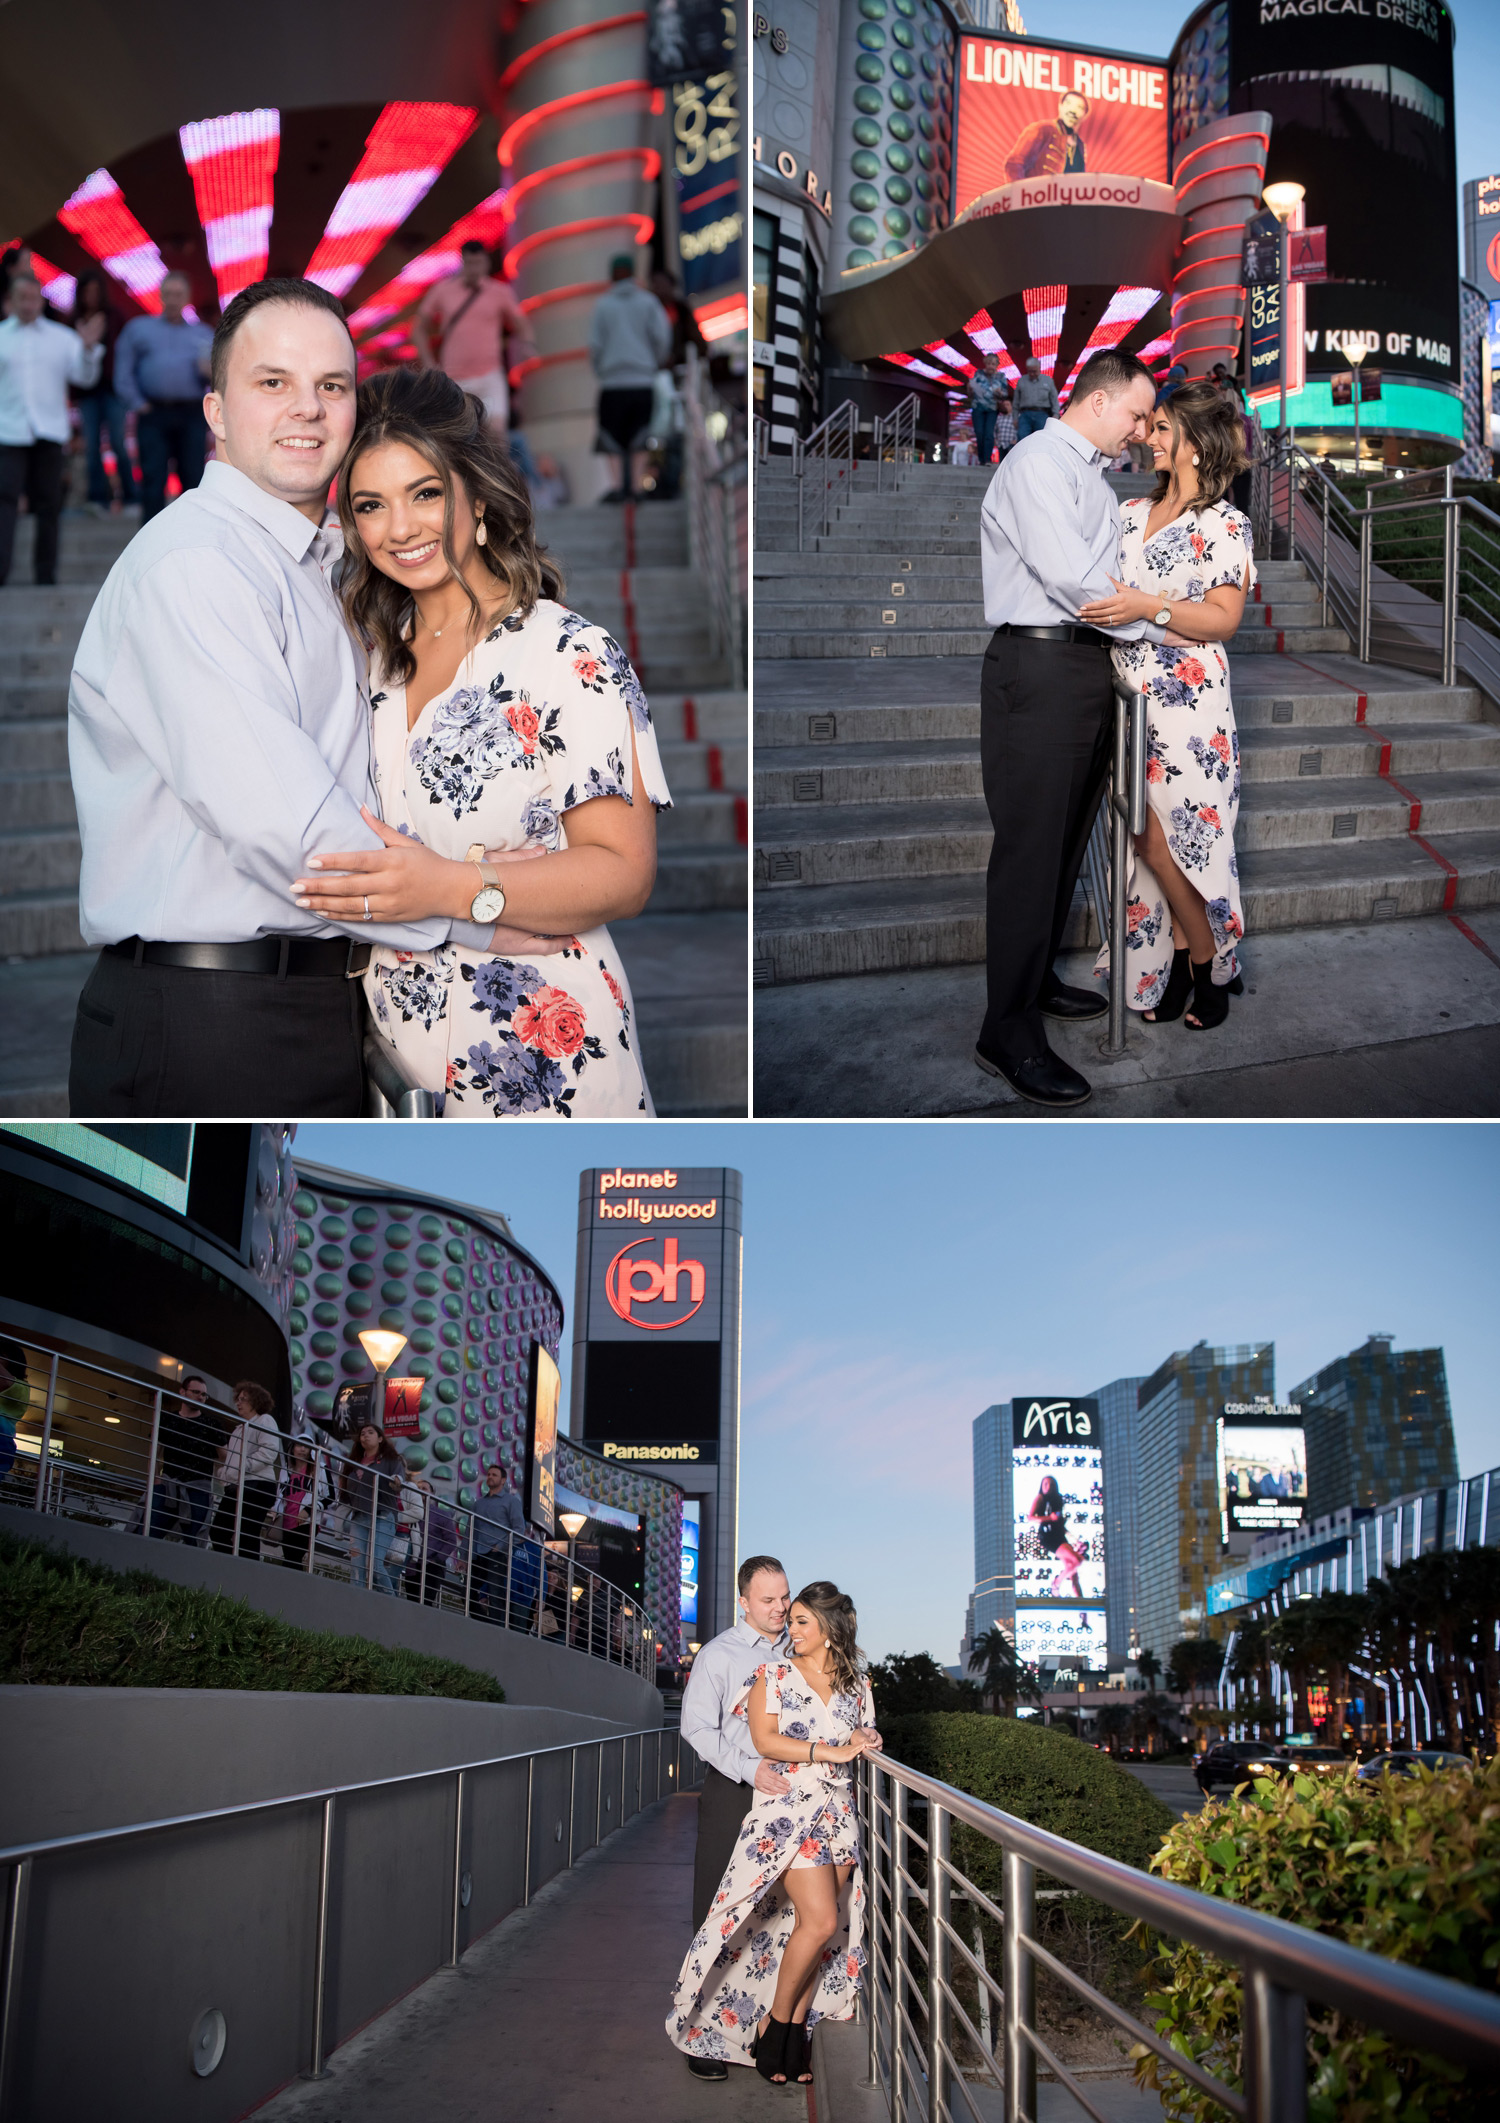 Las Vegas Strip Engagement Session | Kristen Marie Weddings + Portraits | Location Available for Full-Day Wedding Clients